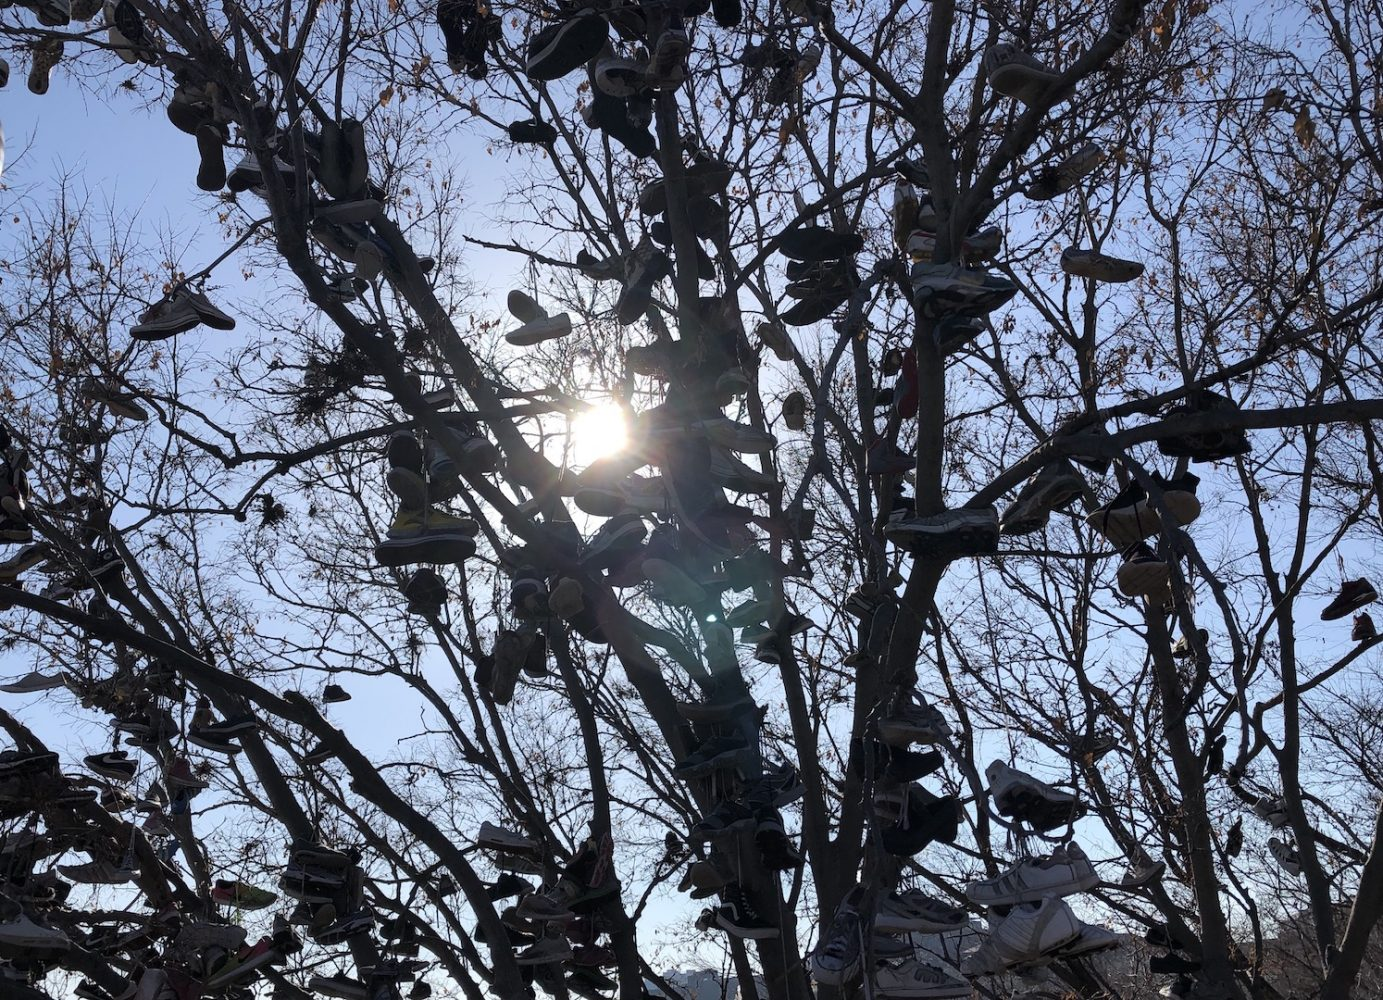 Silhouette of tree branches filled with shoes with the sun shining through the branches.